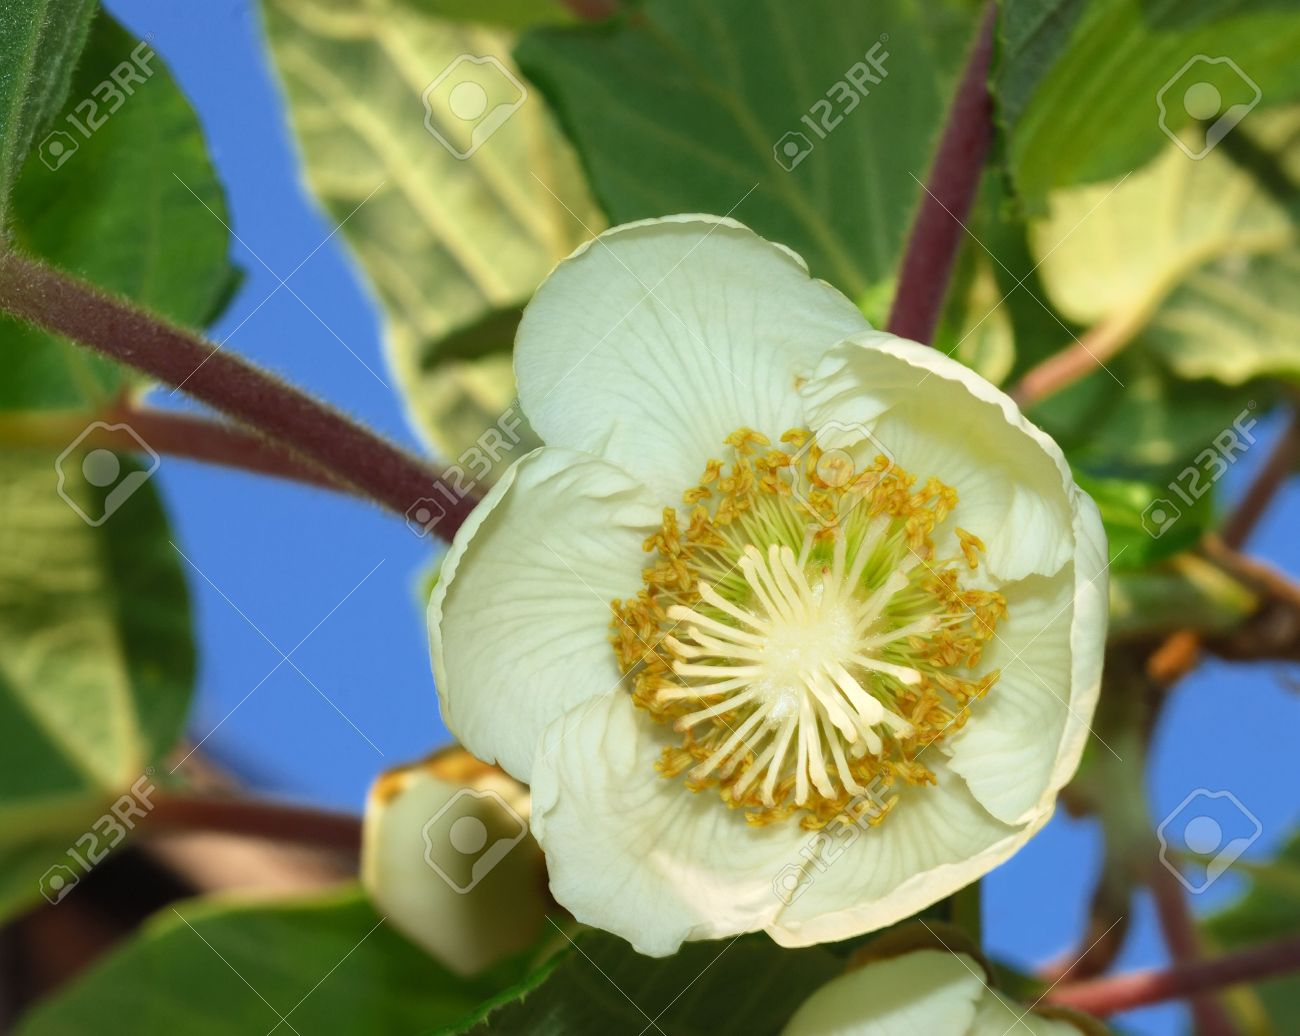 Fiori Kiwi.Close Up Of A Kiwifruit Female Flower With Leaves In Background